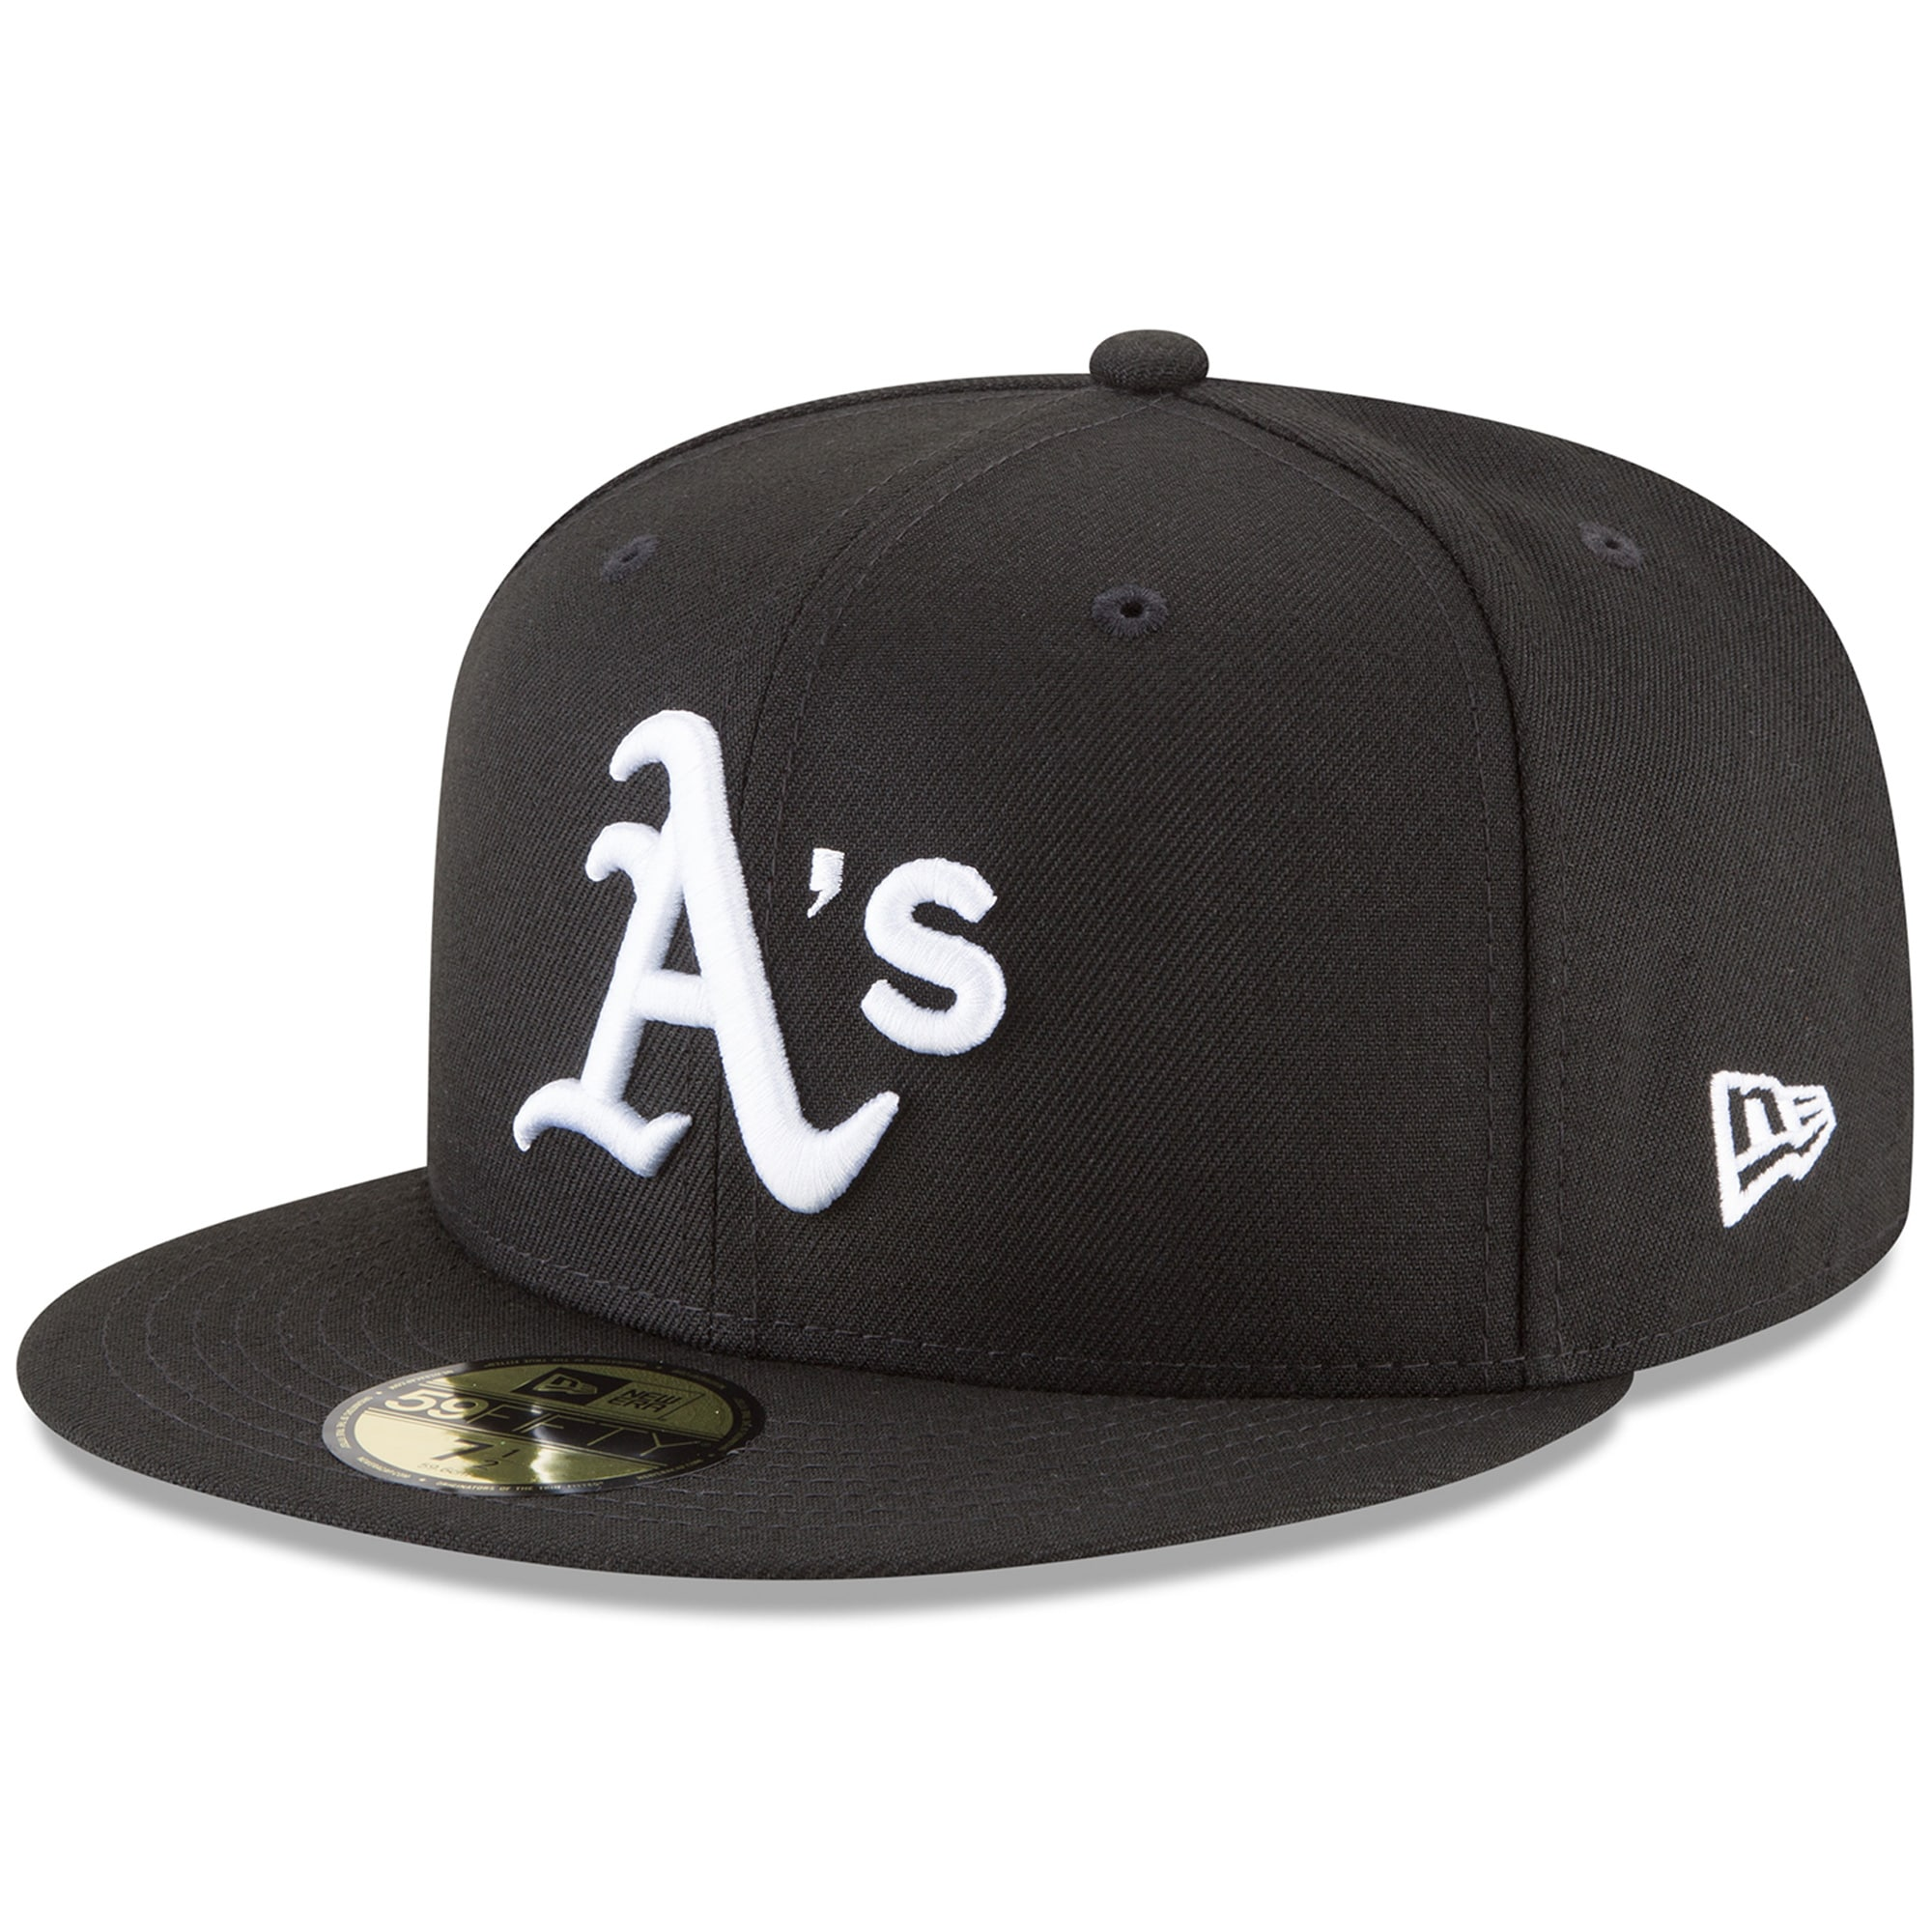 Oakland Athletics New Era 59FIFTY Fitted Hat - Black